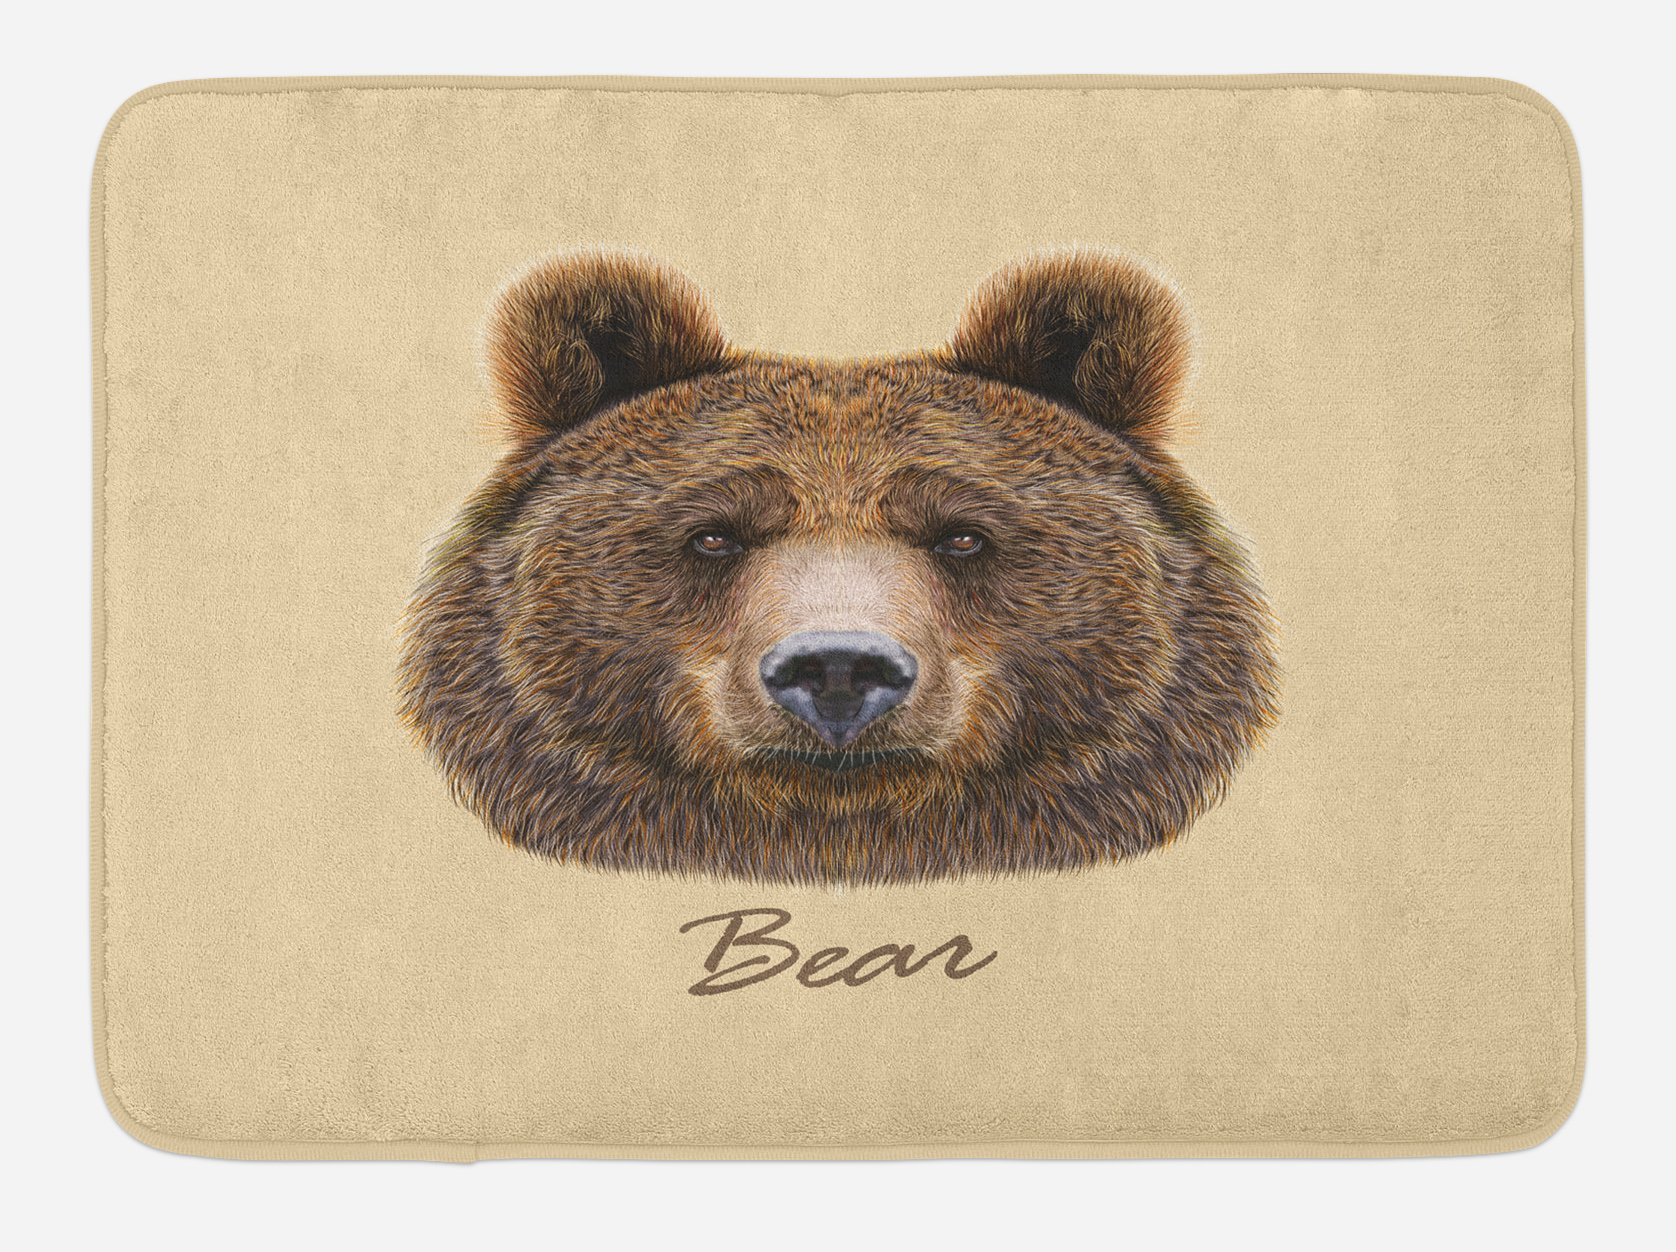 Ambesonne Bear Bath Mat, Big Bear of North America and Eurasia Realistic Strong Wildlife Beast Zoo Animal, Plush Bathroom Decor Mat with Non Slip Backing, 29.5 W X 17.5 W Inches, Brown Sand Brown